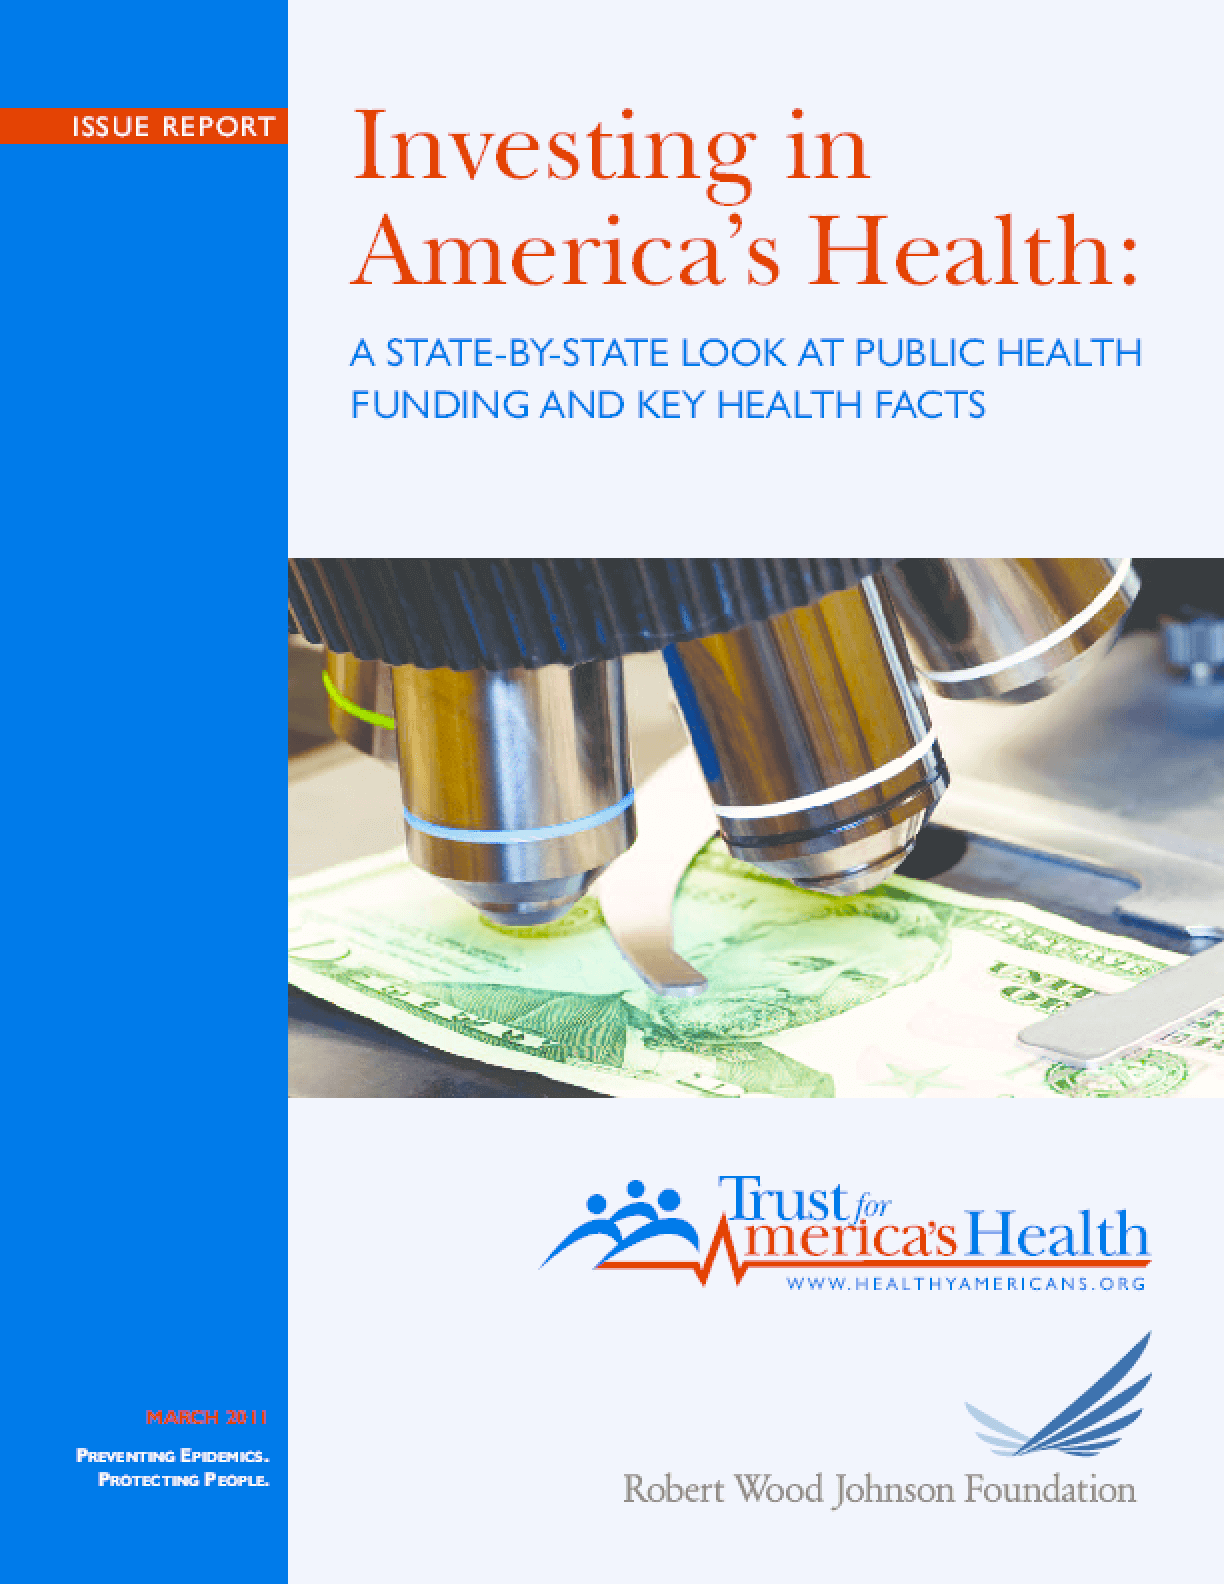 Investing in America's Health: A State-By-State Look at Public Health Funding and Key Health Facts 2011